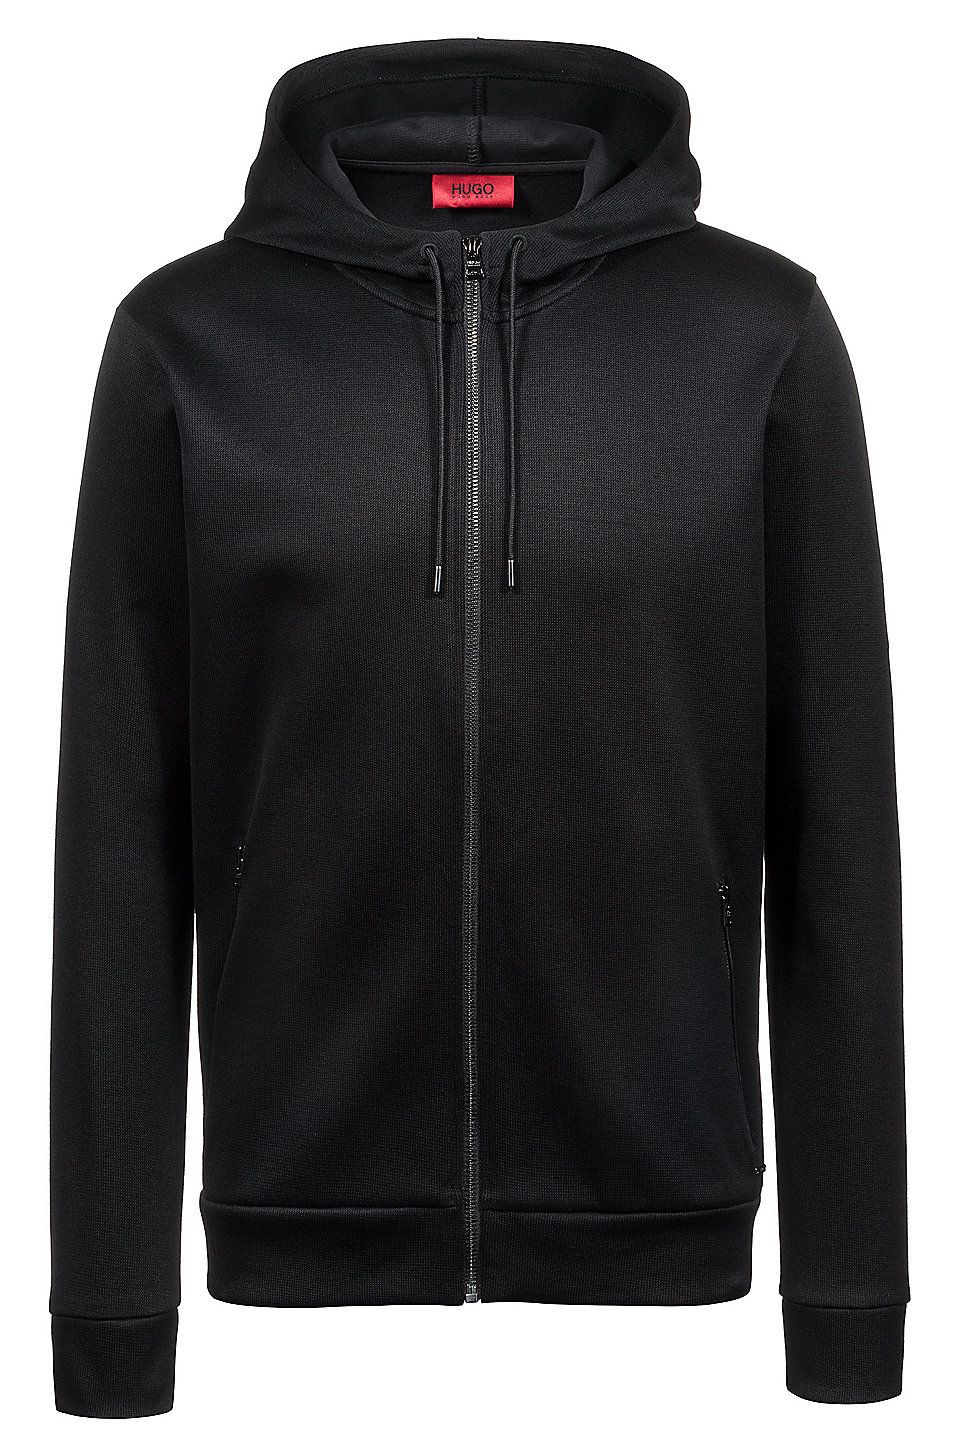 9db065365579 HUGO BOSS Relaxed-fit hooded sweatshirt in French rib cotton - Black  Sweaters and Cardigans